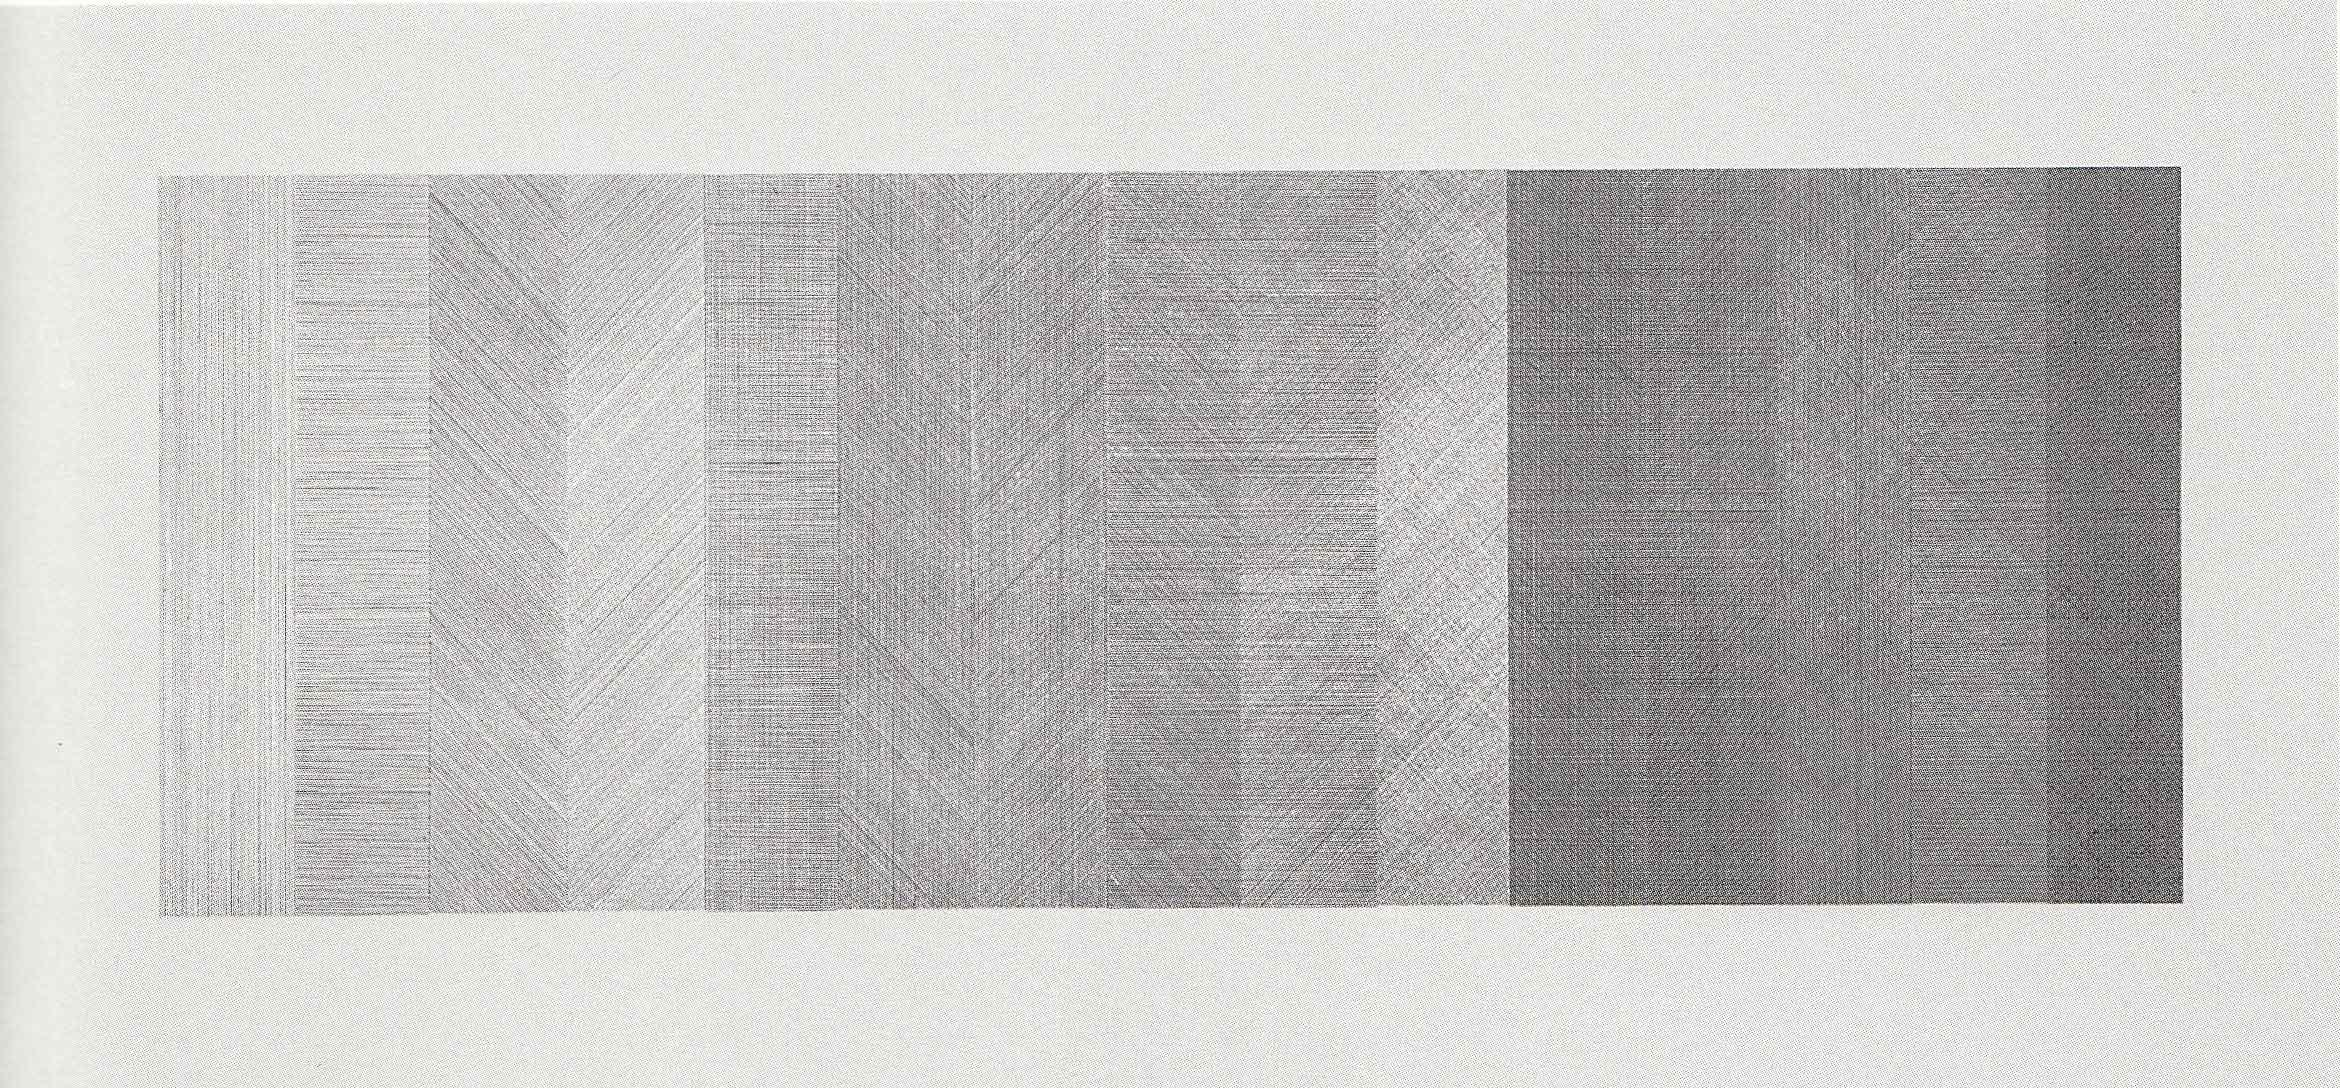 Sol Lewitt Wall Drawing 47